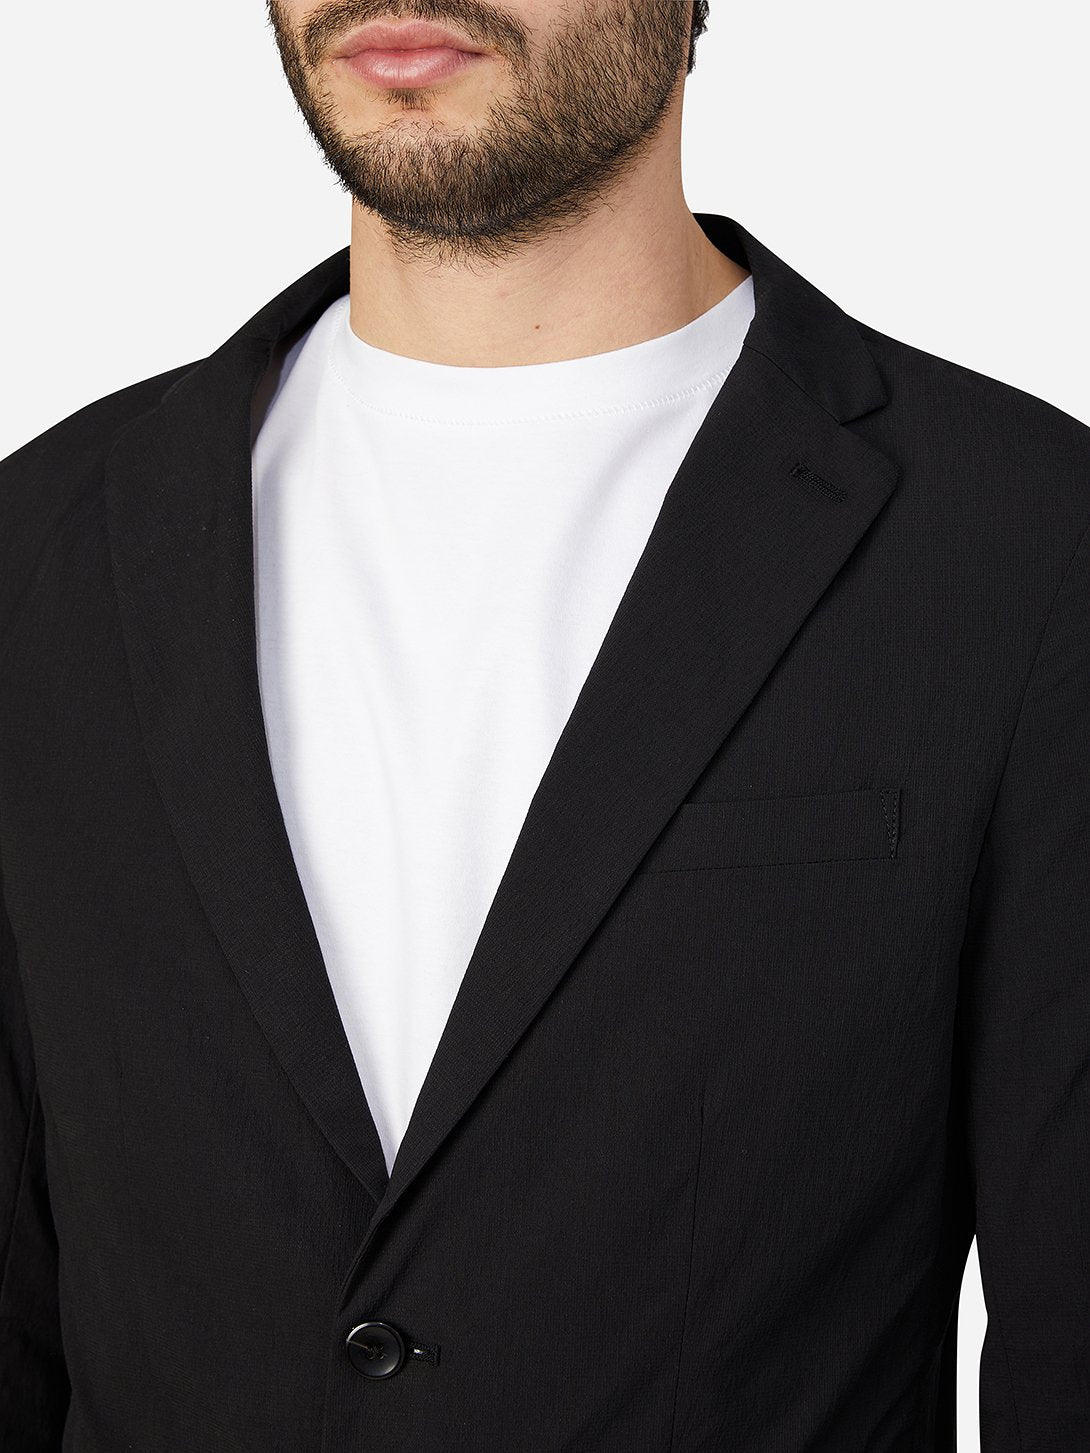 JET BLACK blazers for men conduit packable blazer ons clothing